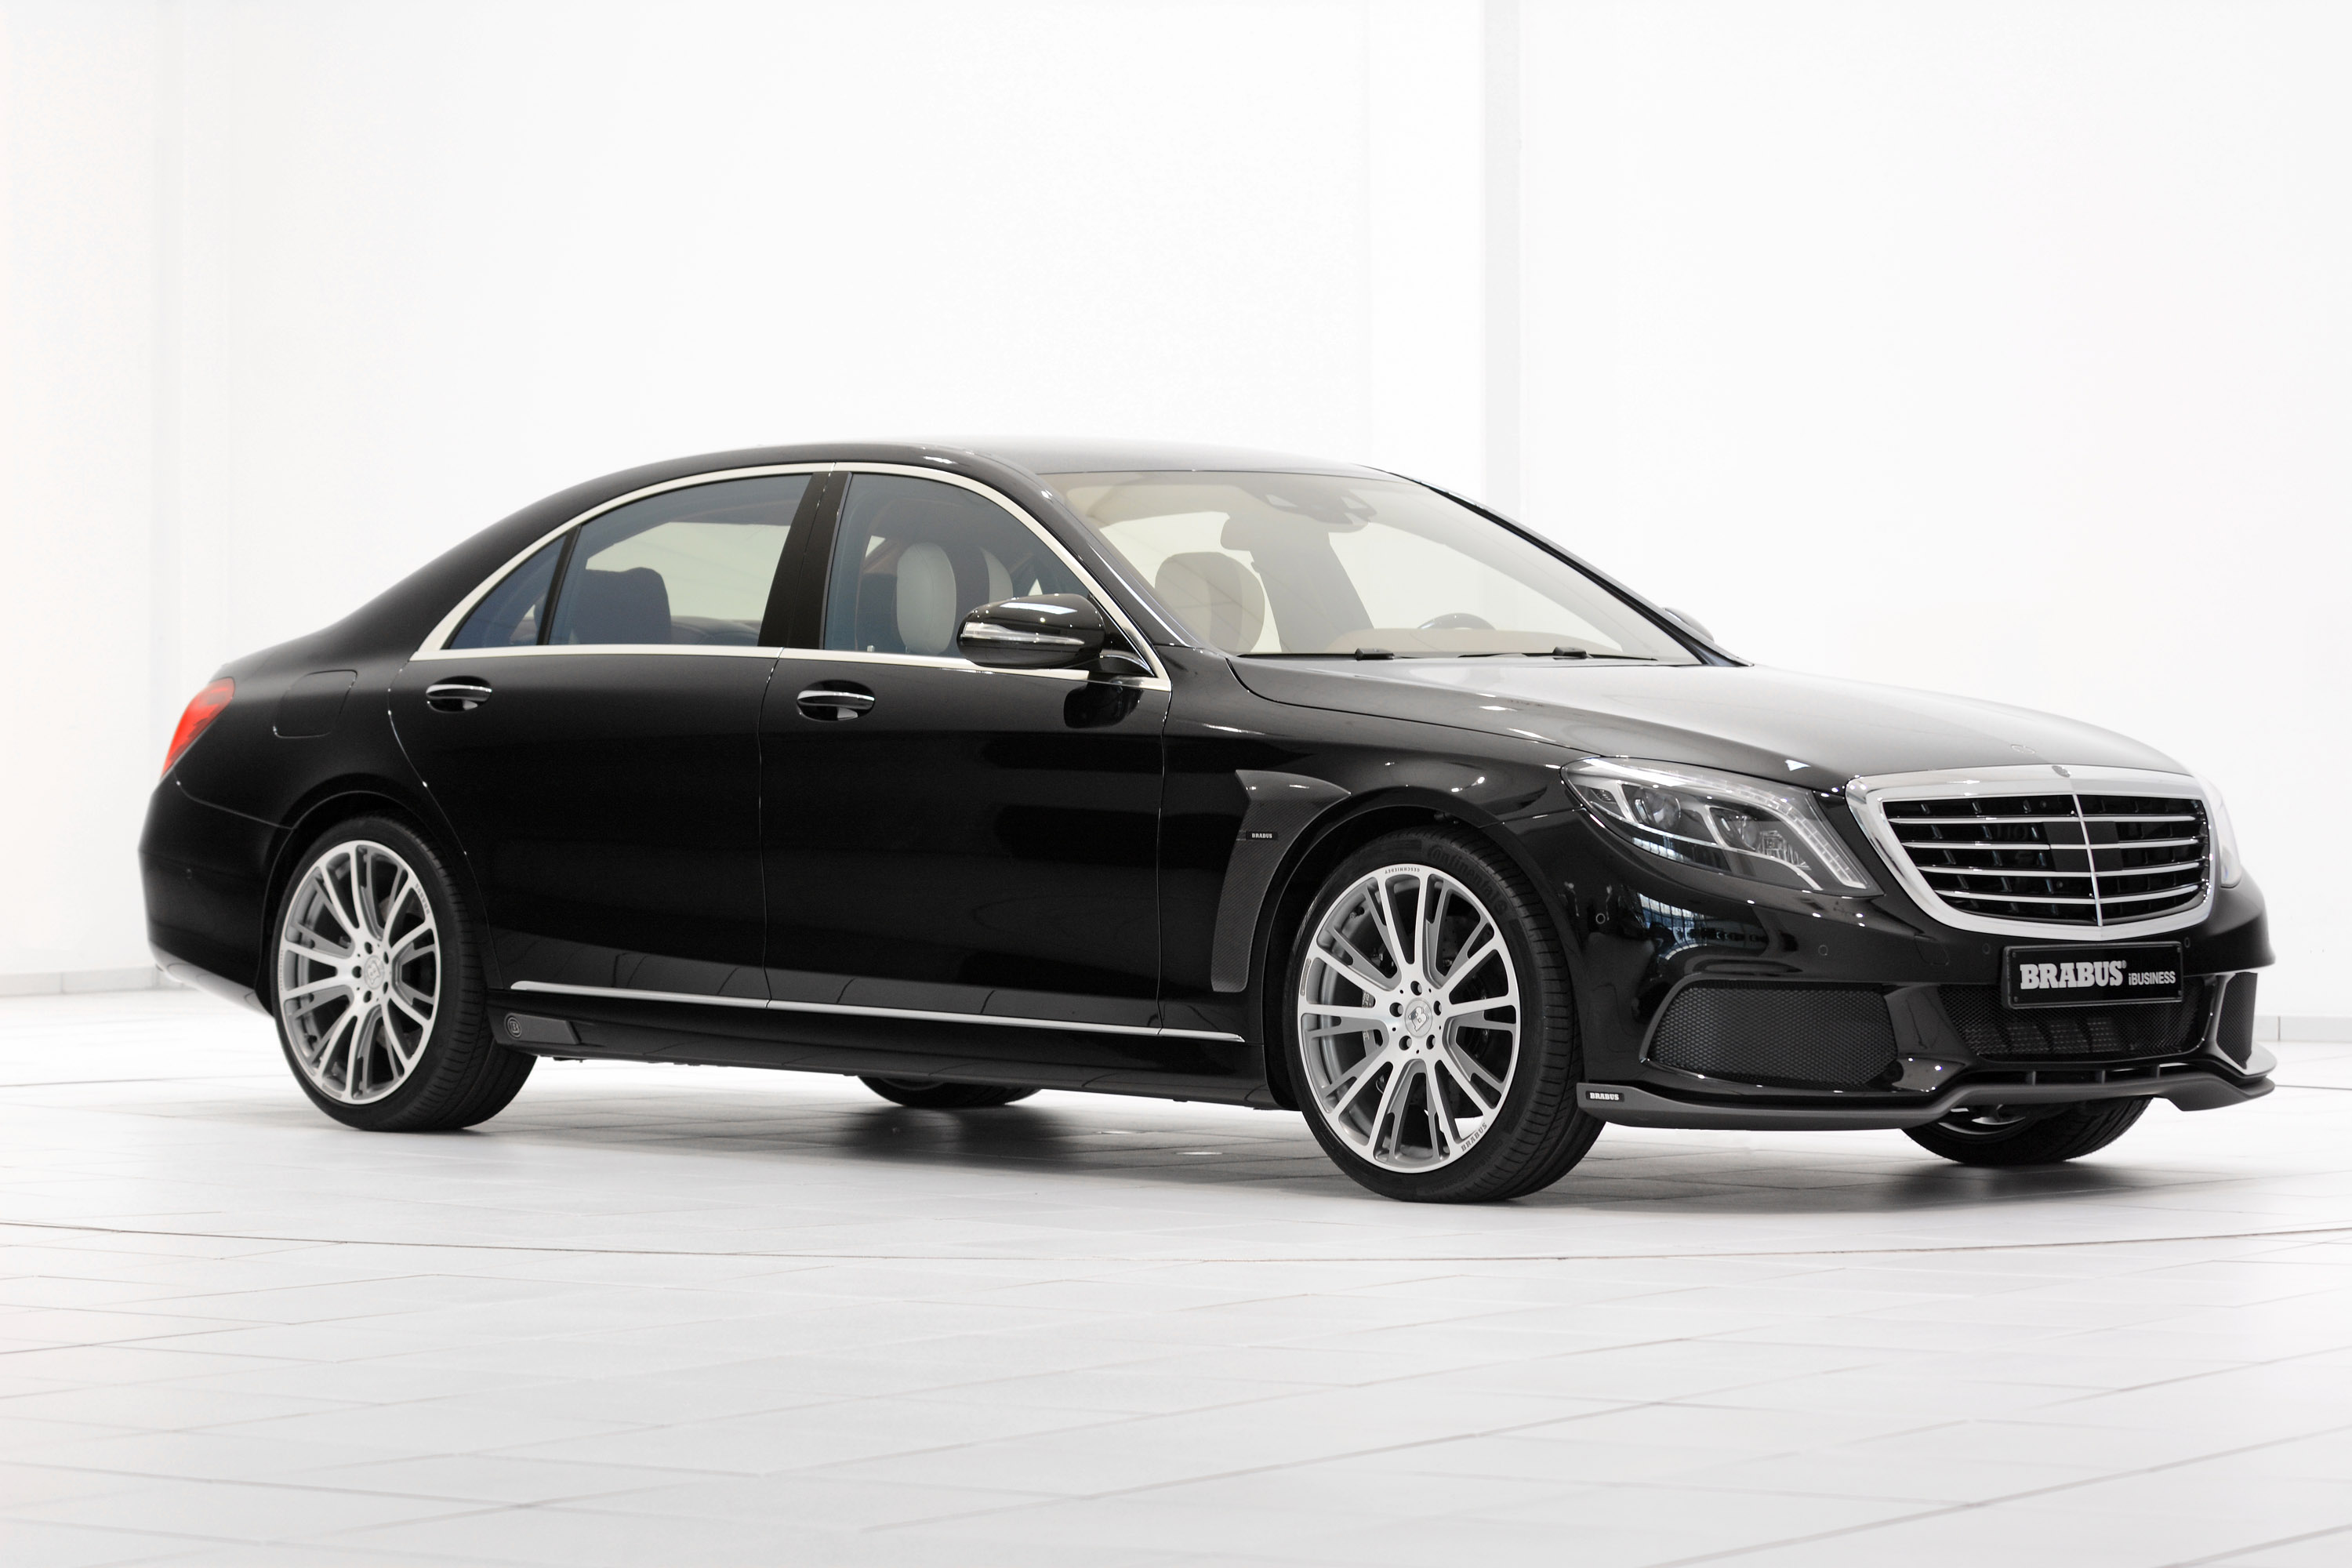 Brabus 850 6 0 bi turbo ibusiness based on mercedes benz for Mercedes benz 850